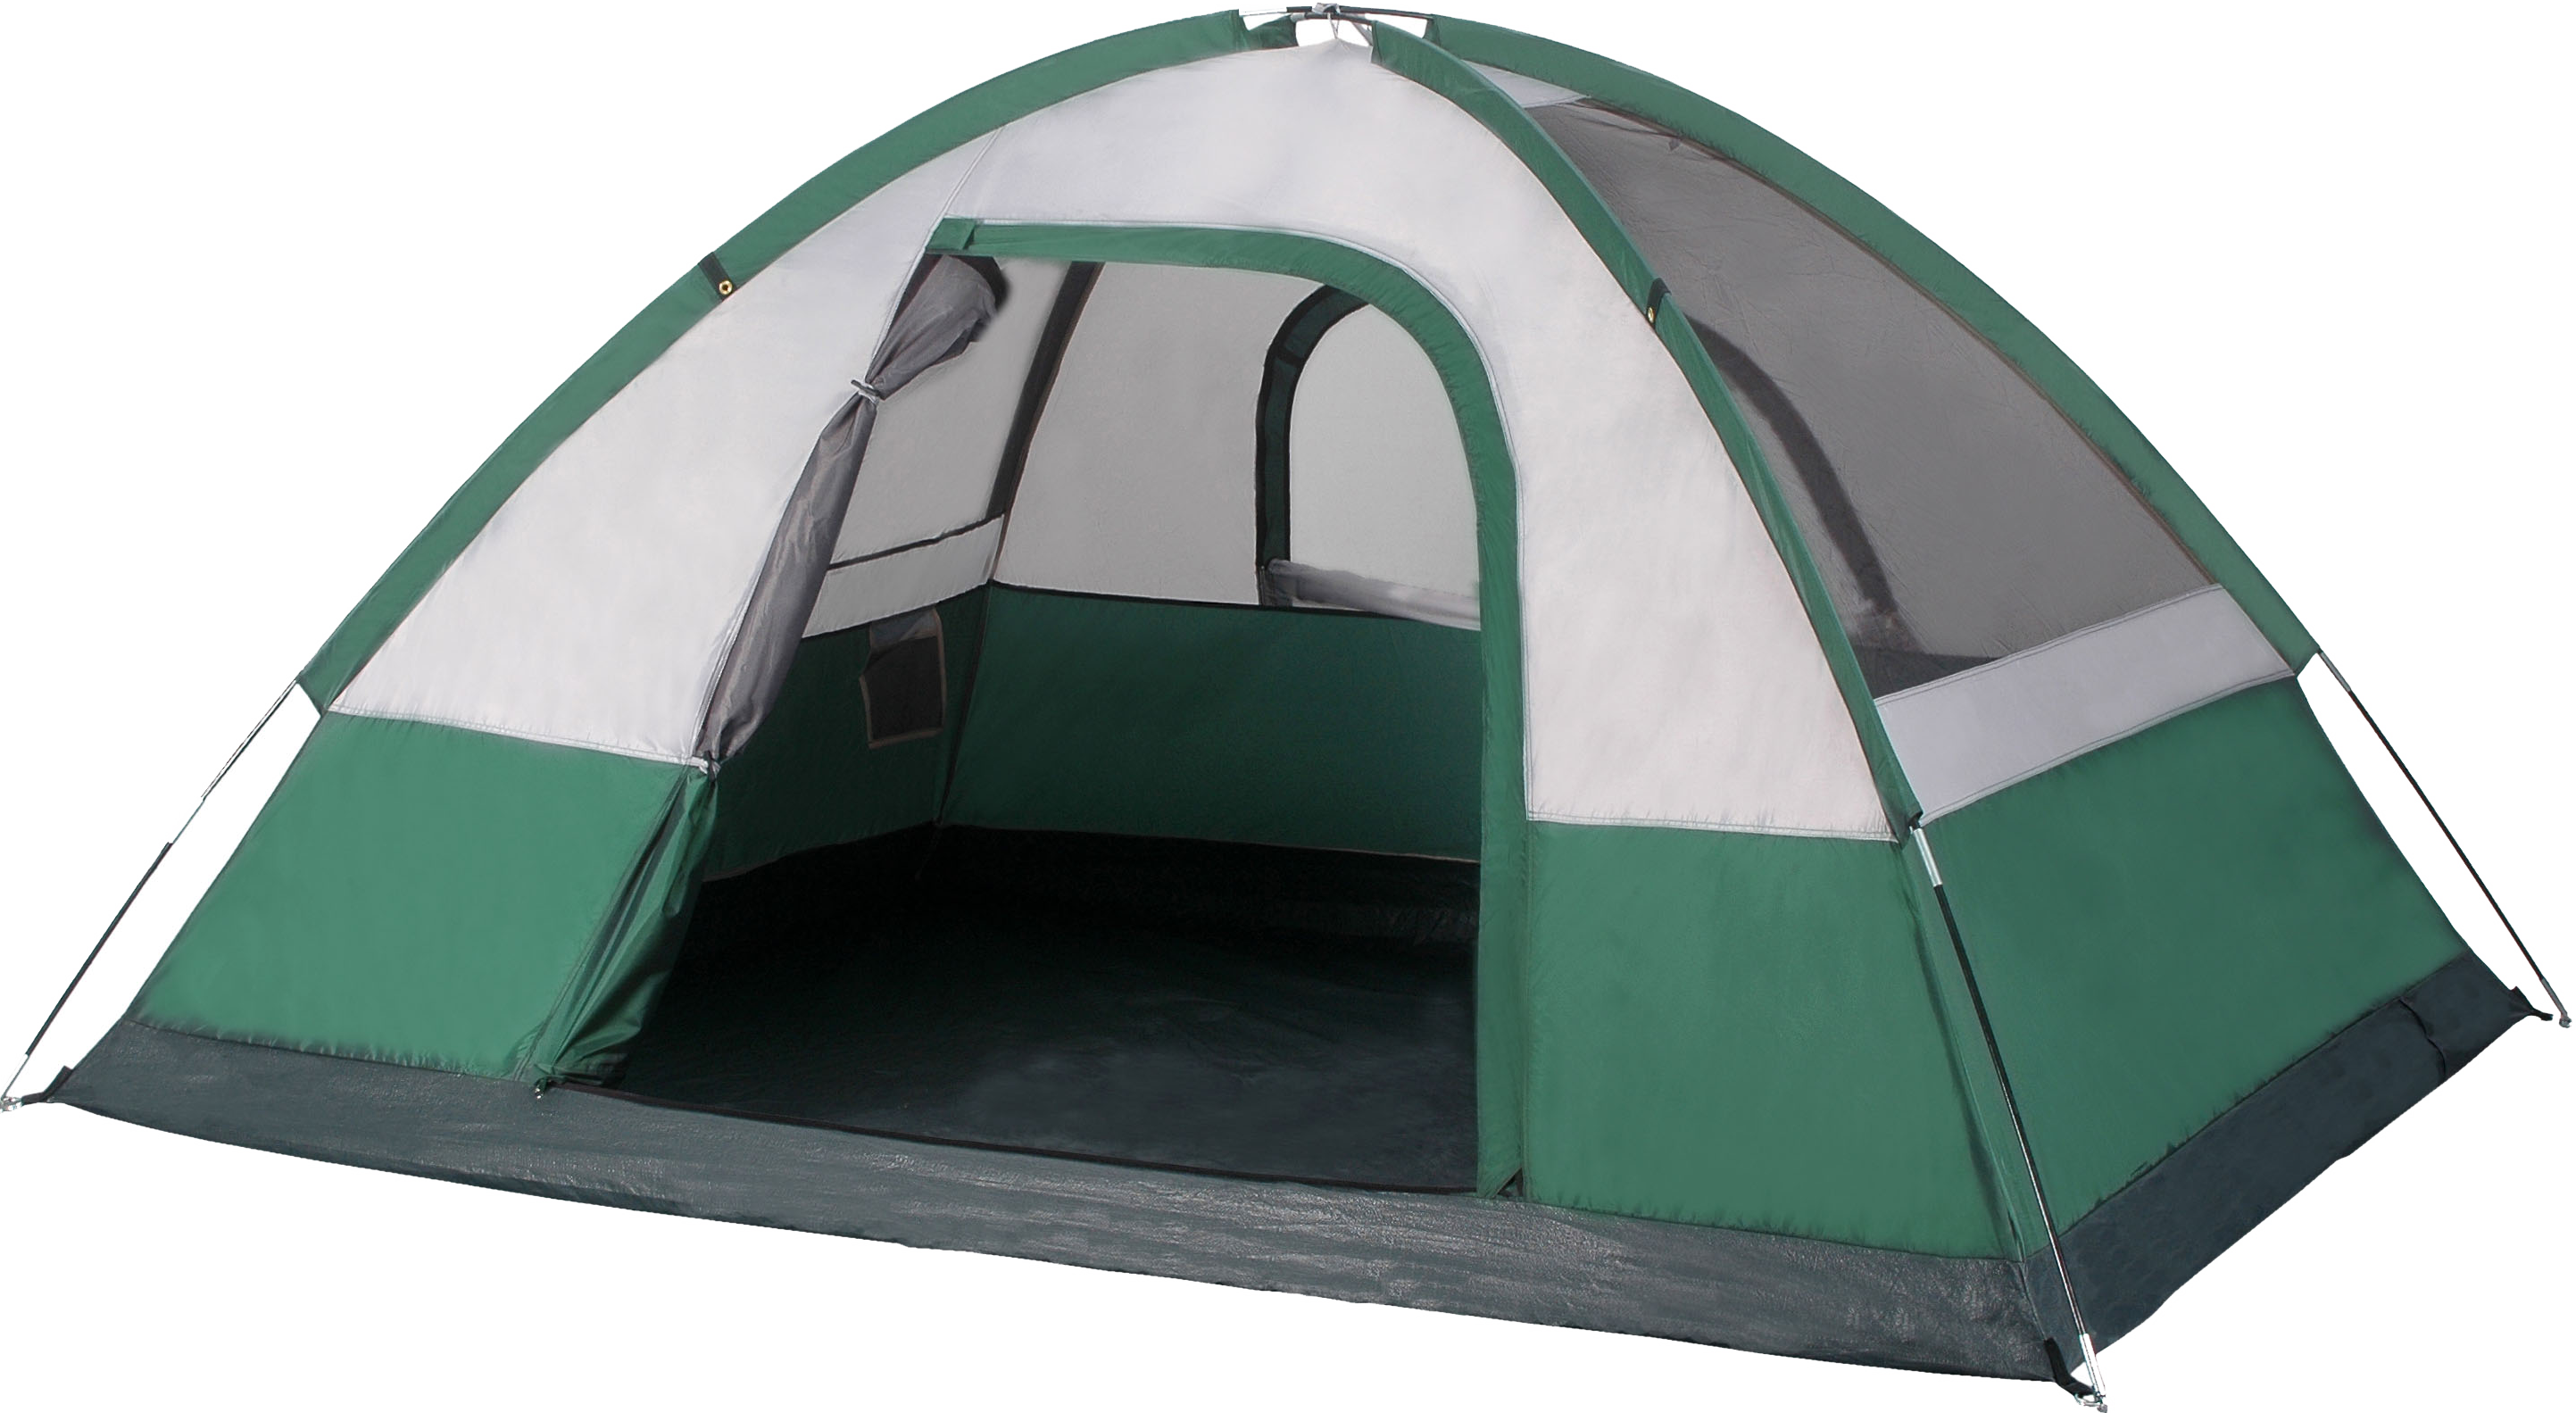 Green Tent PNG Image.